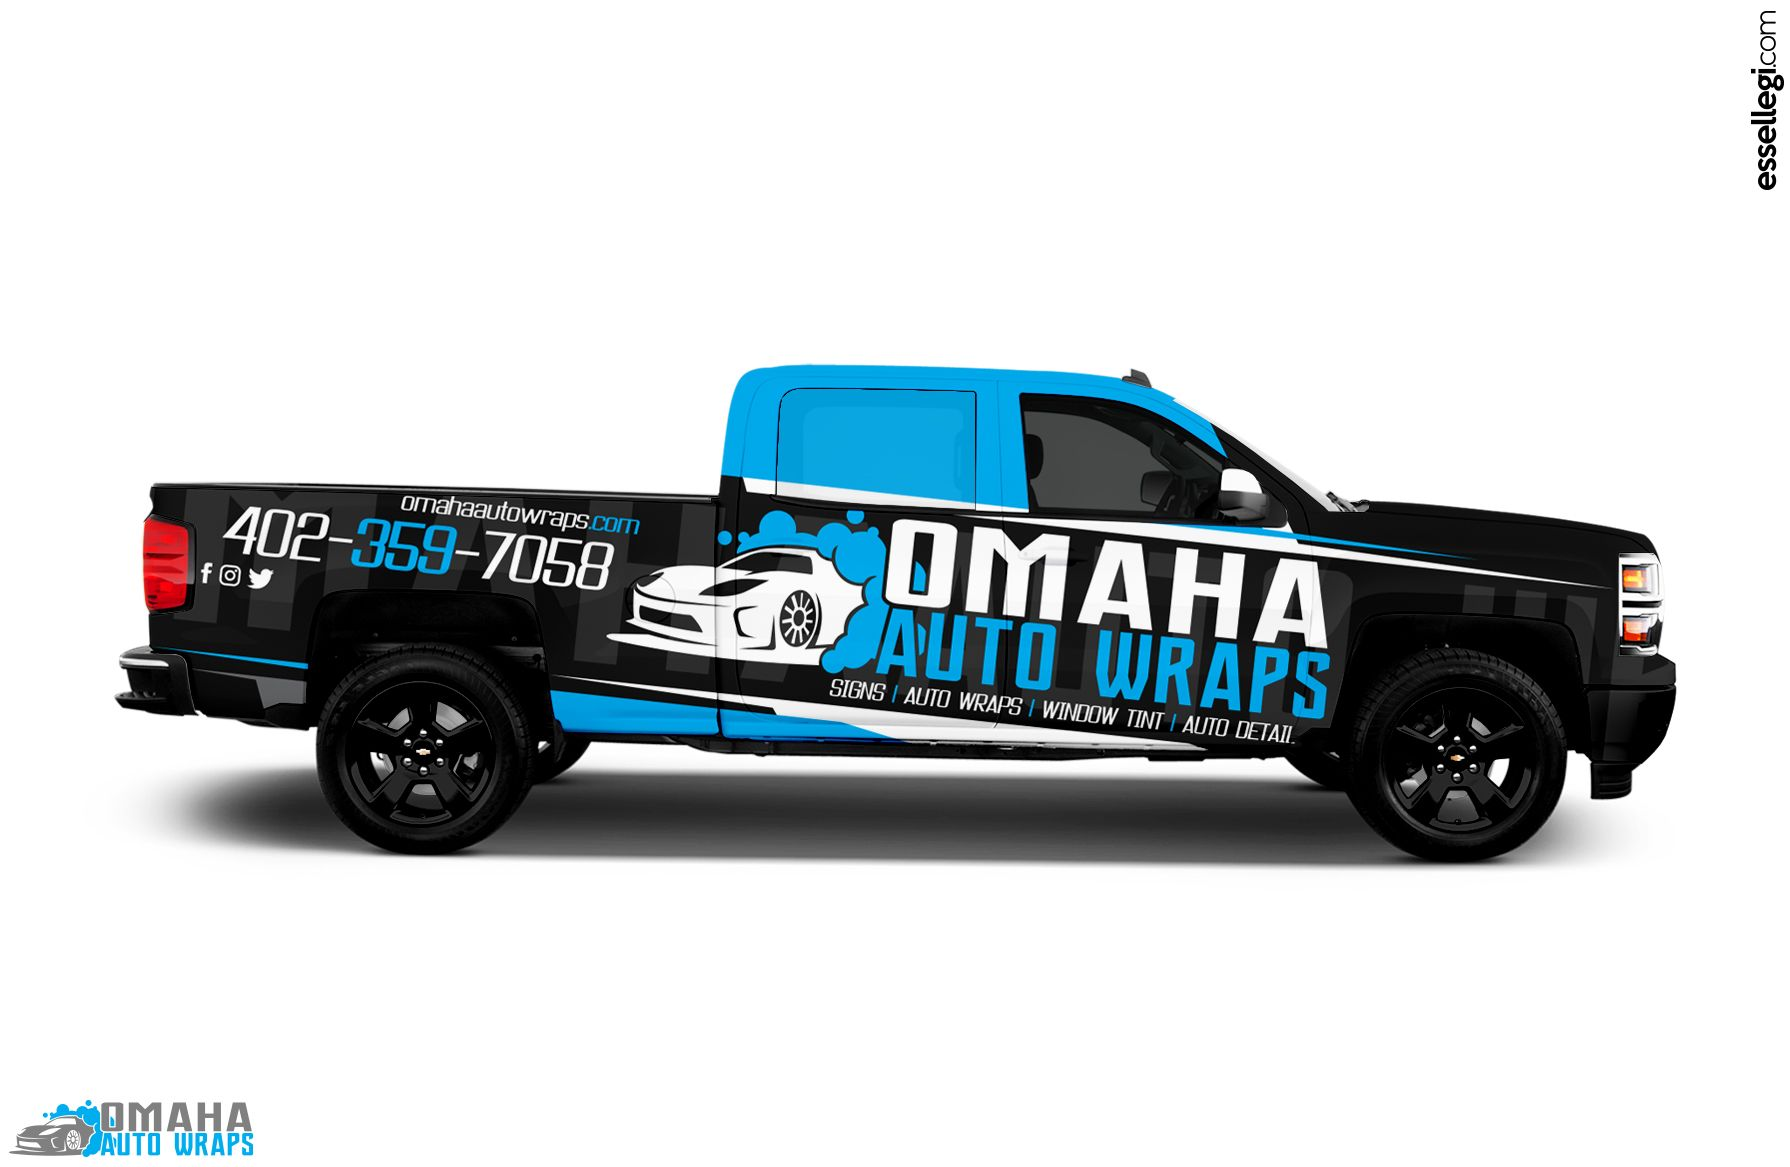 Turn to the professionals at Omaha Auto Wraps to get